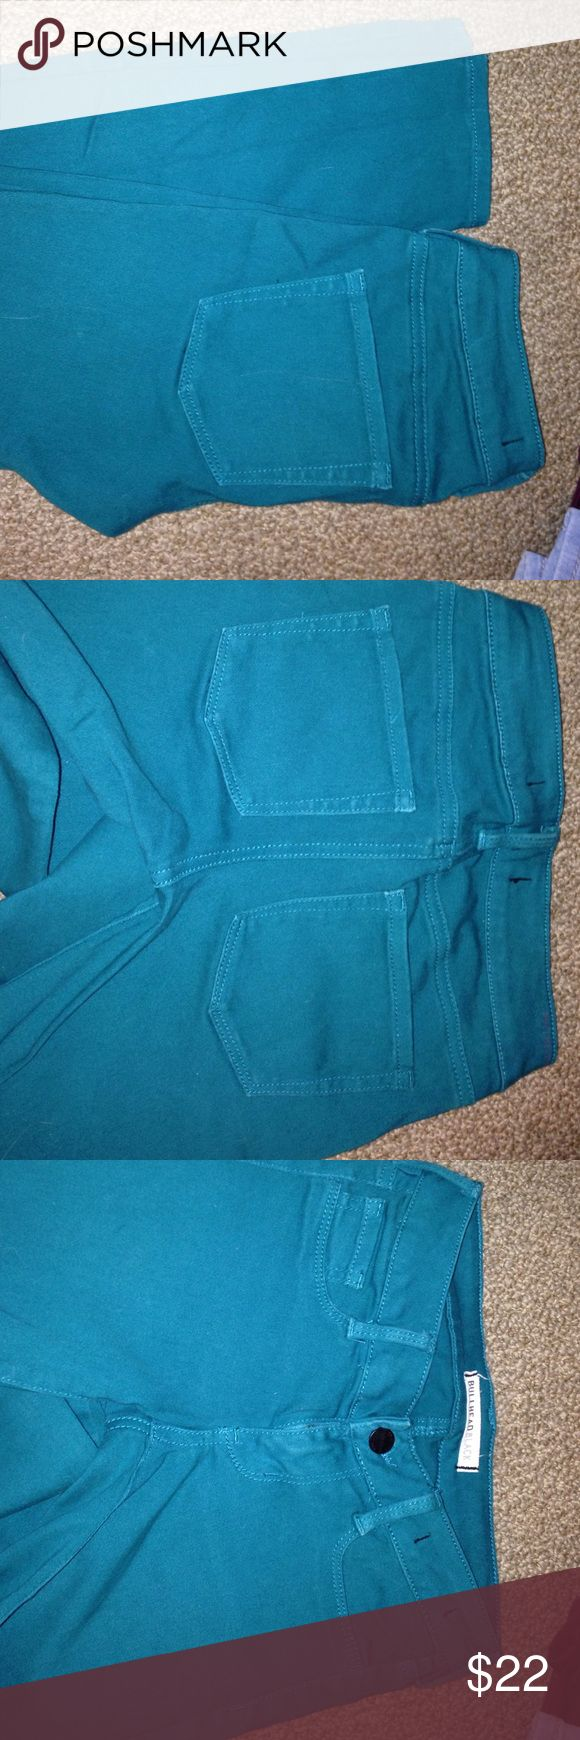 Turquoise jeans Worn only once! Perfect condition& super comfy PacSun Jeans Skinny